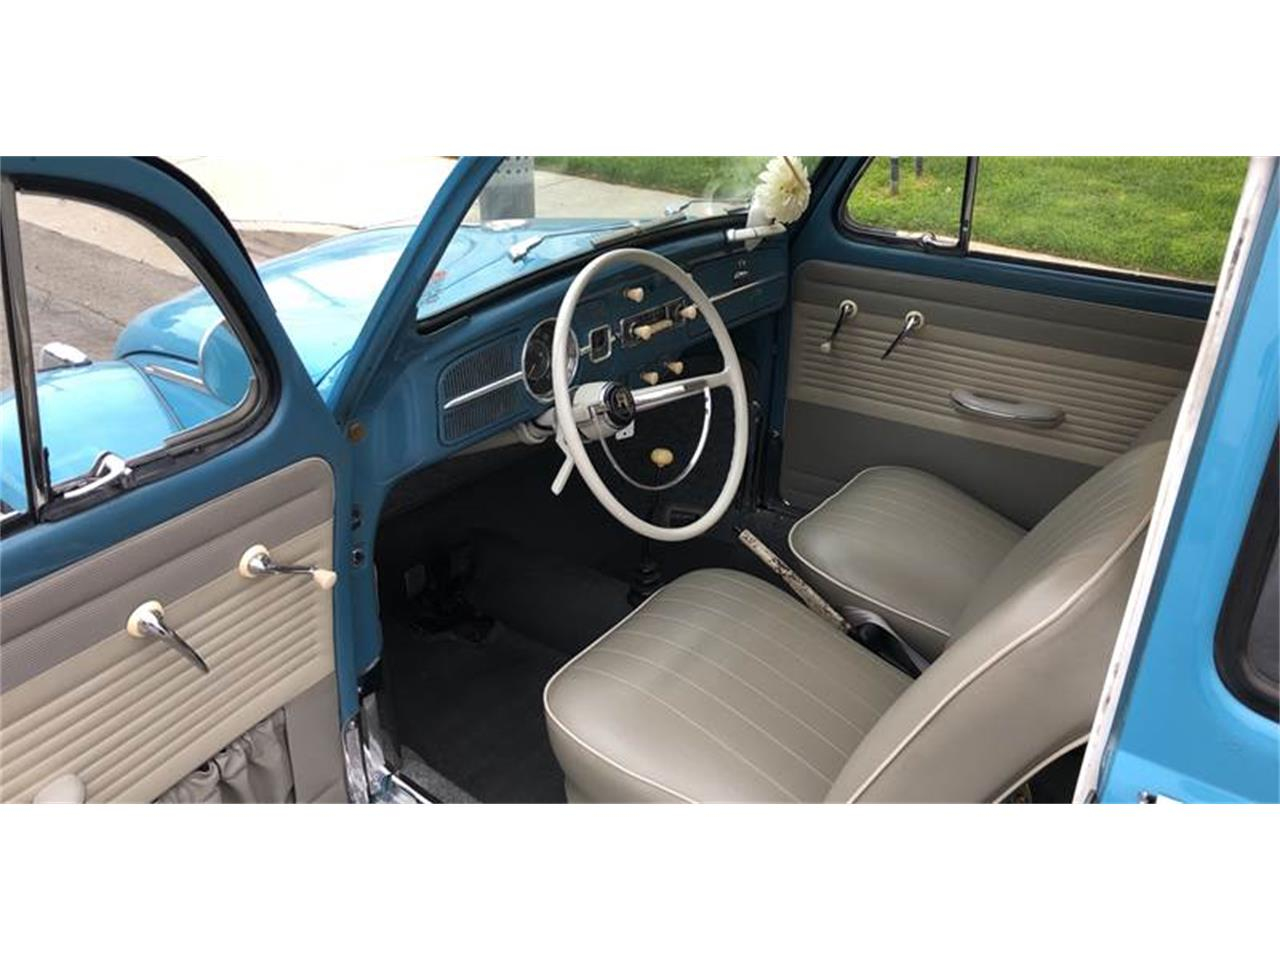 Large Picture of '63 Volkswagen Beetle located in Brea California Auction Vehicle Offered by Highline Motorsports - QEU8